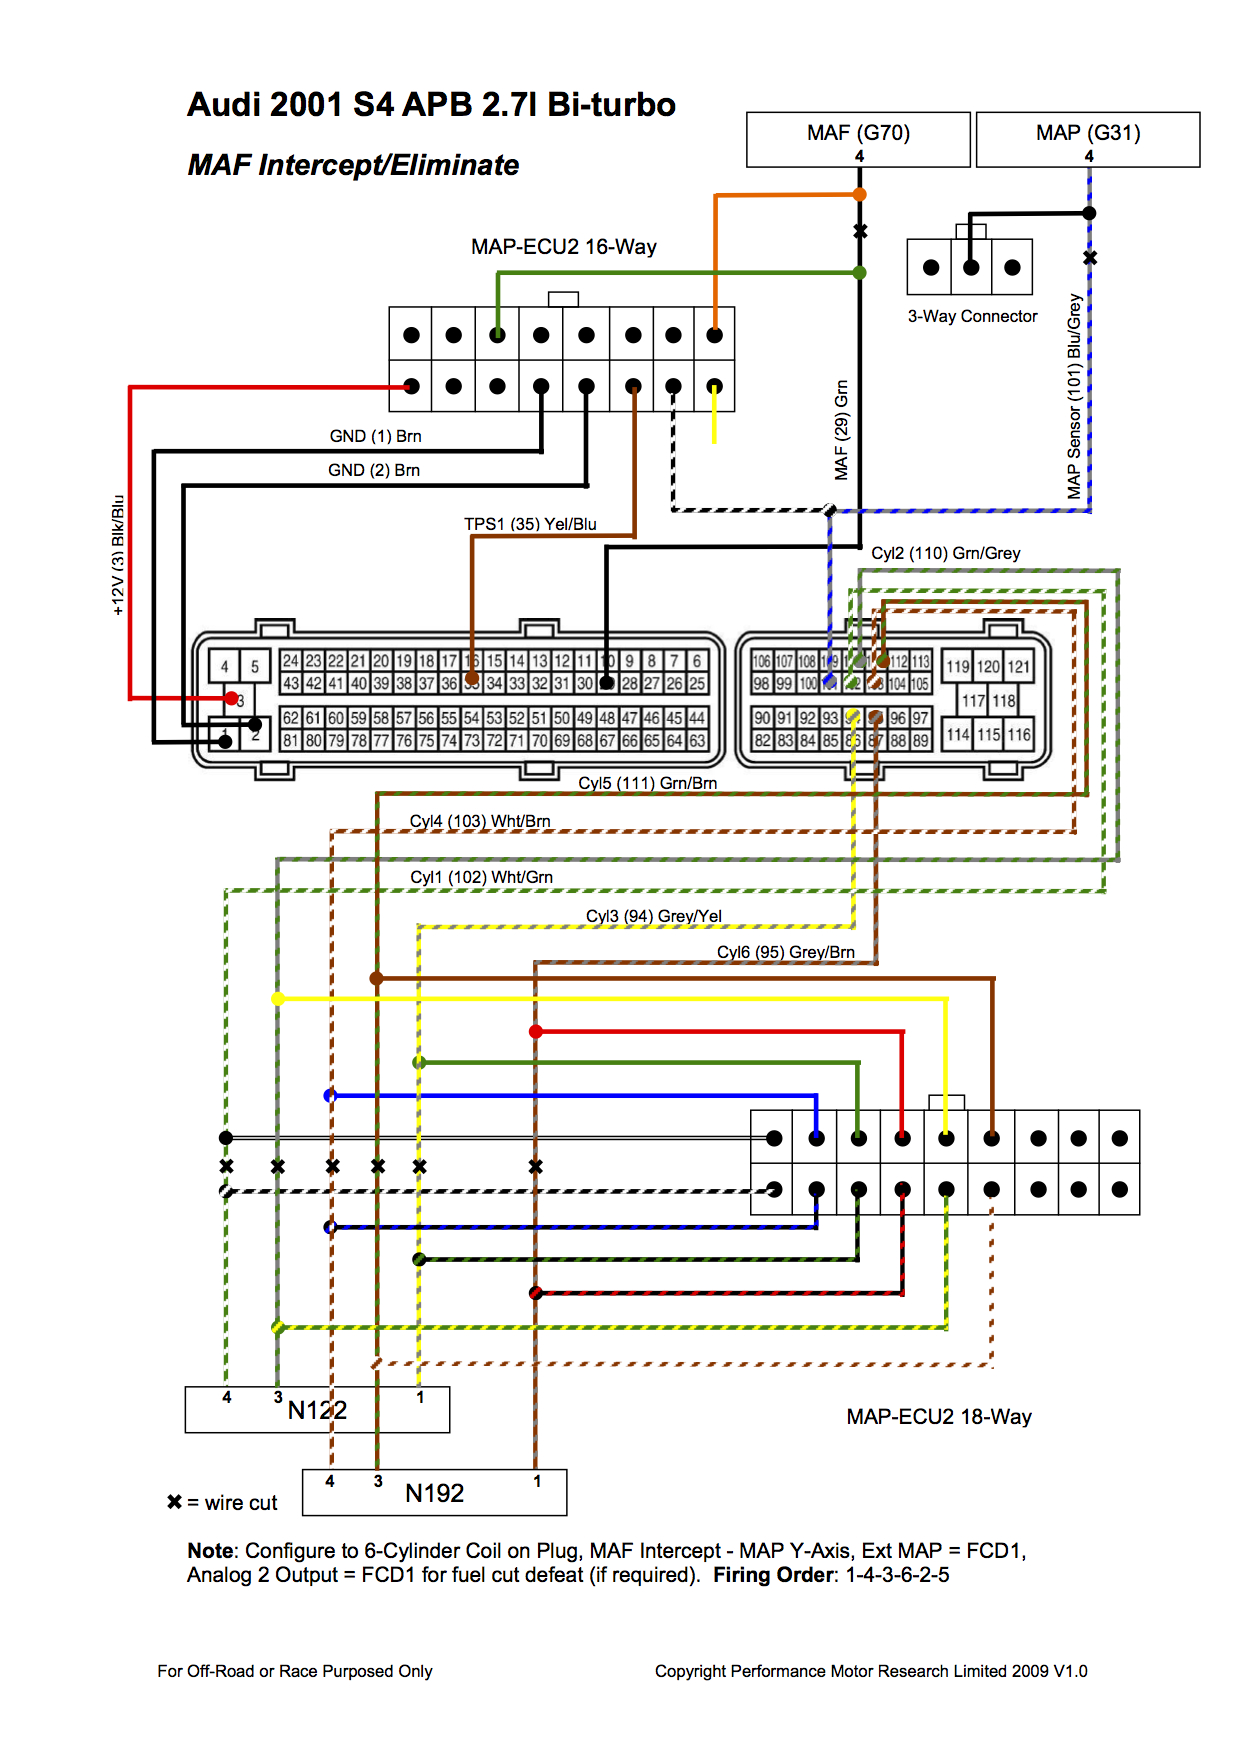 Audi 90 Wiring Diagram Pdf - Wiring Diagram •